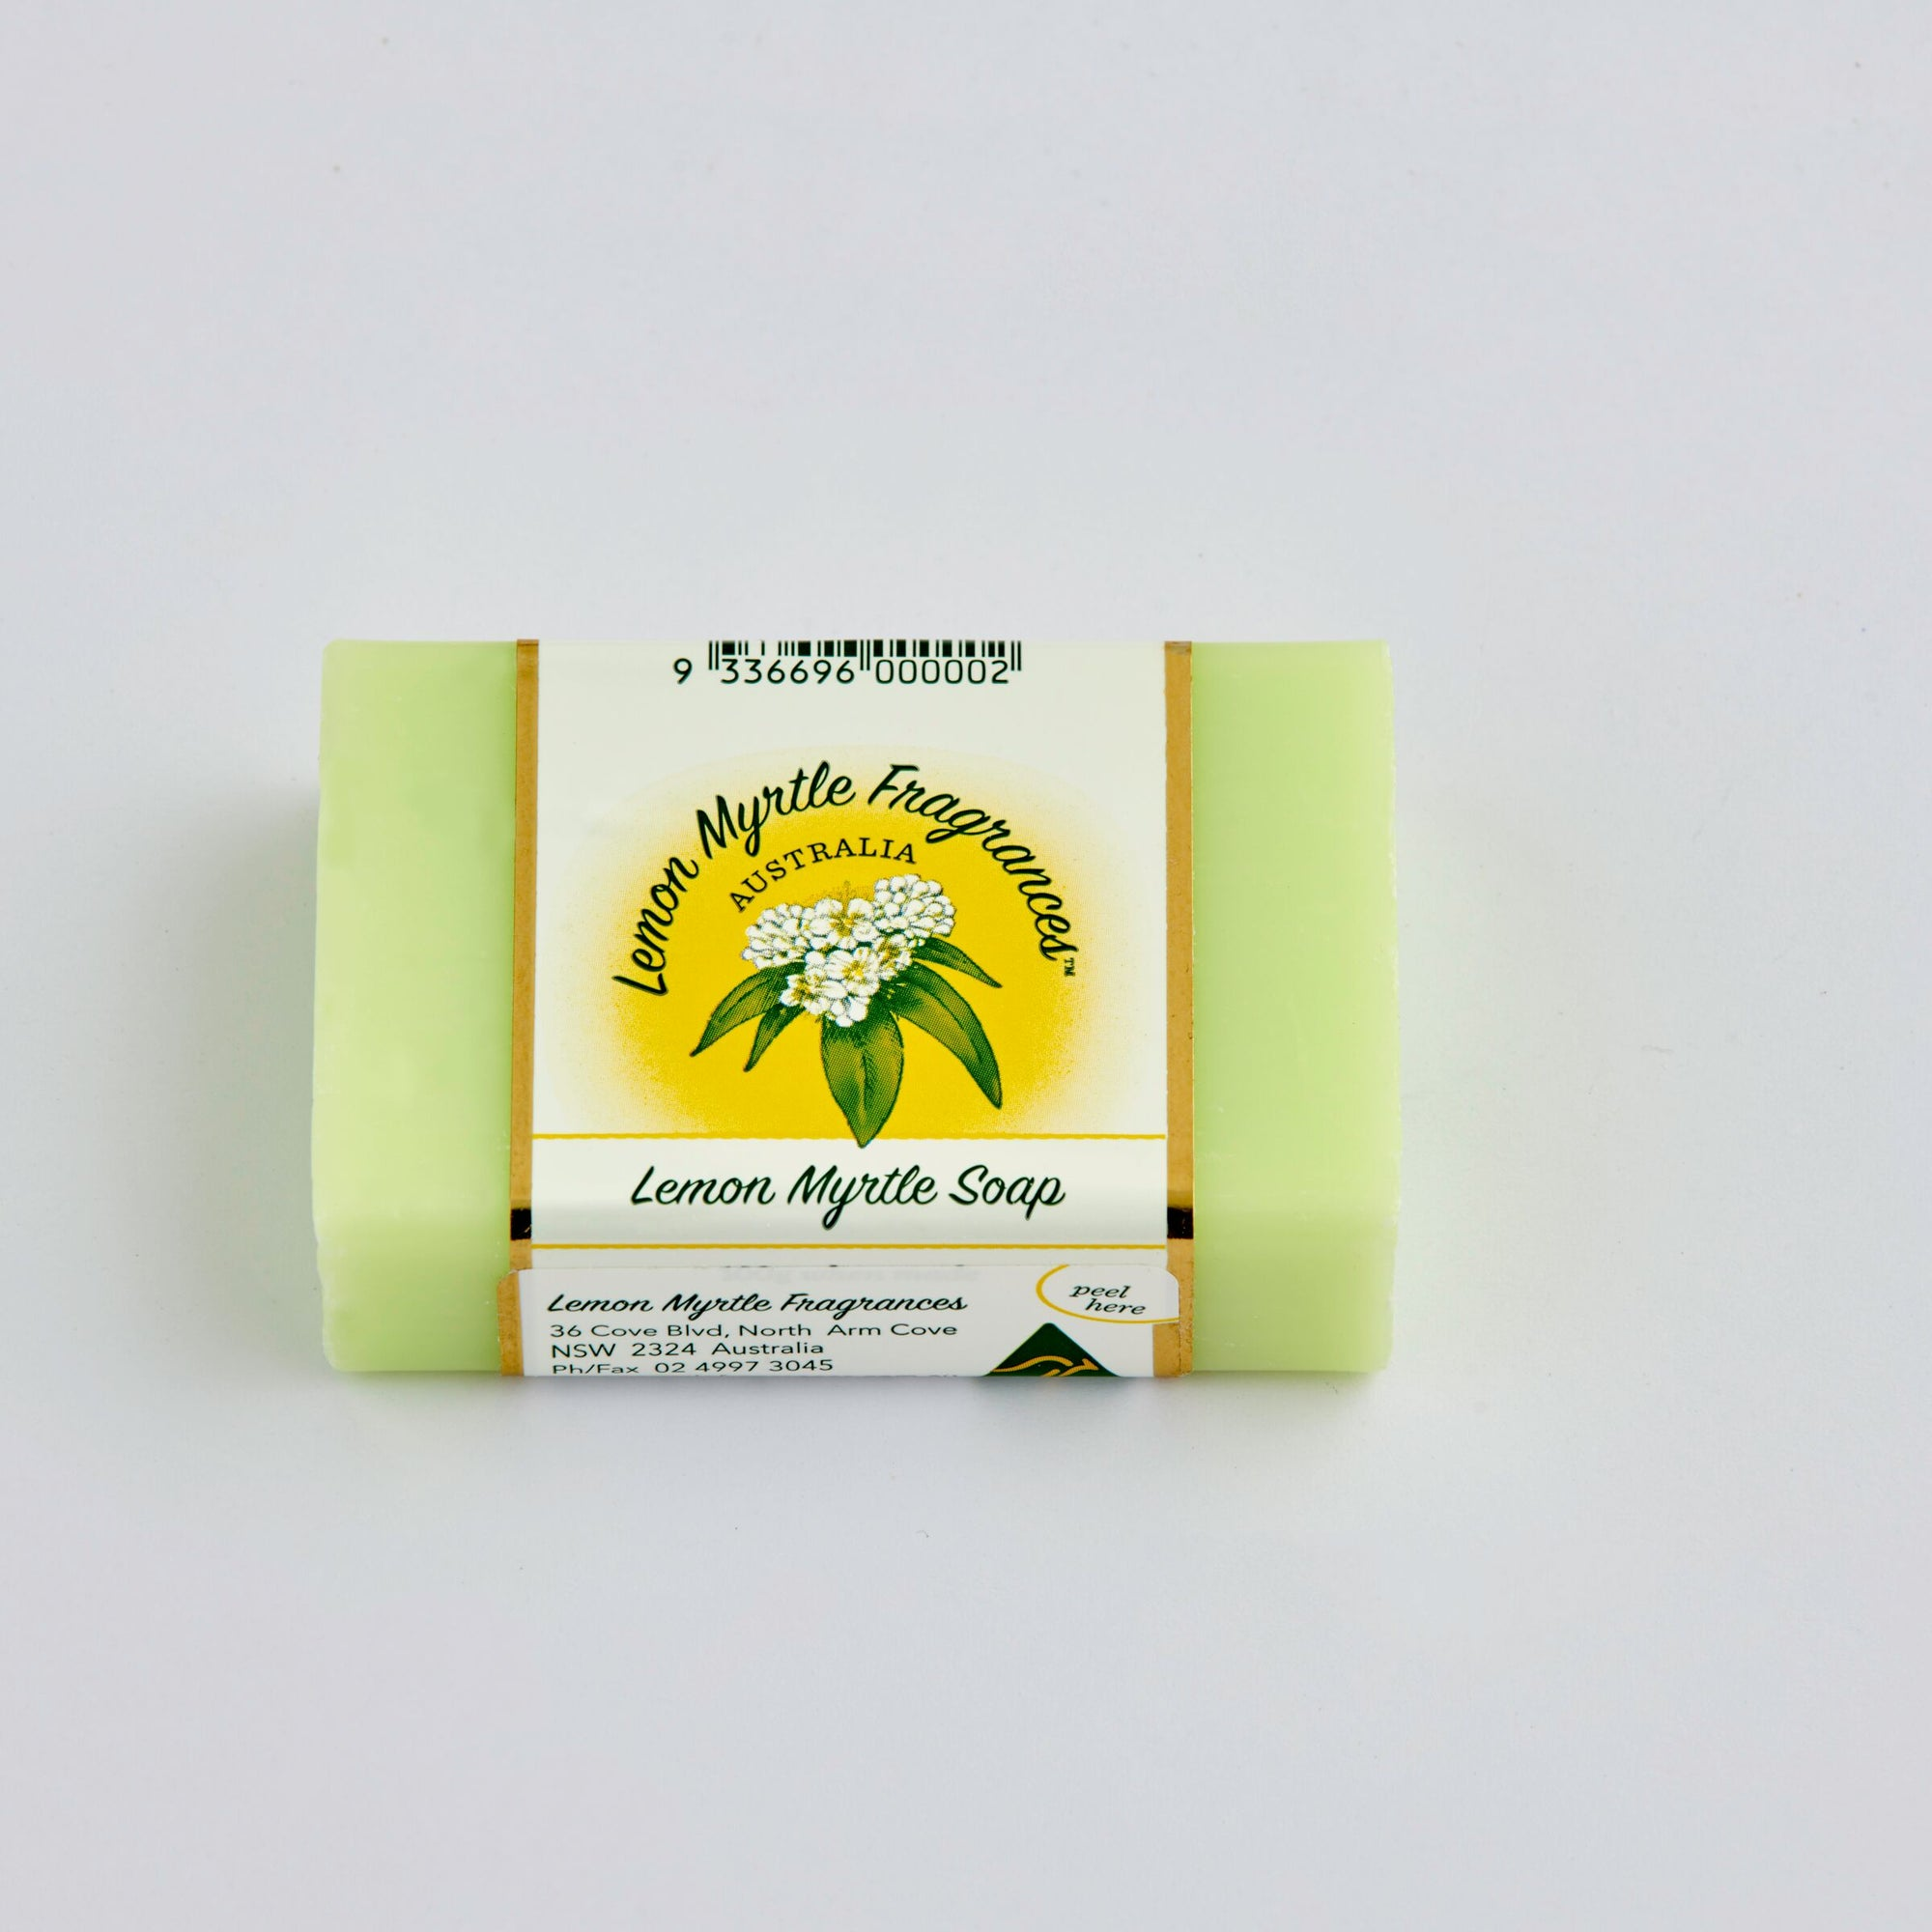 Natural Lemon Myrtle Soap - Single Plain Bars